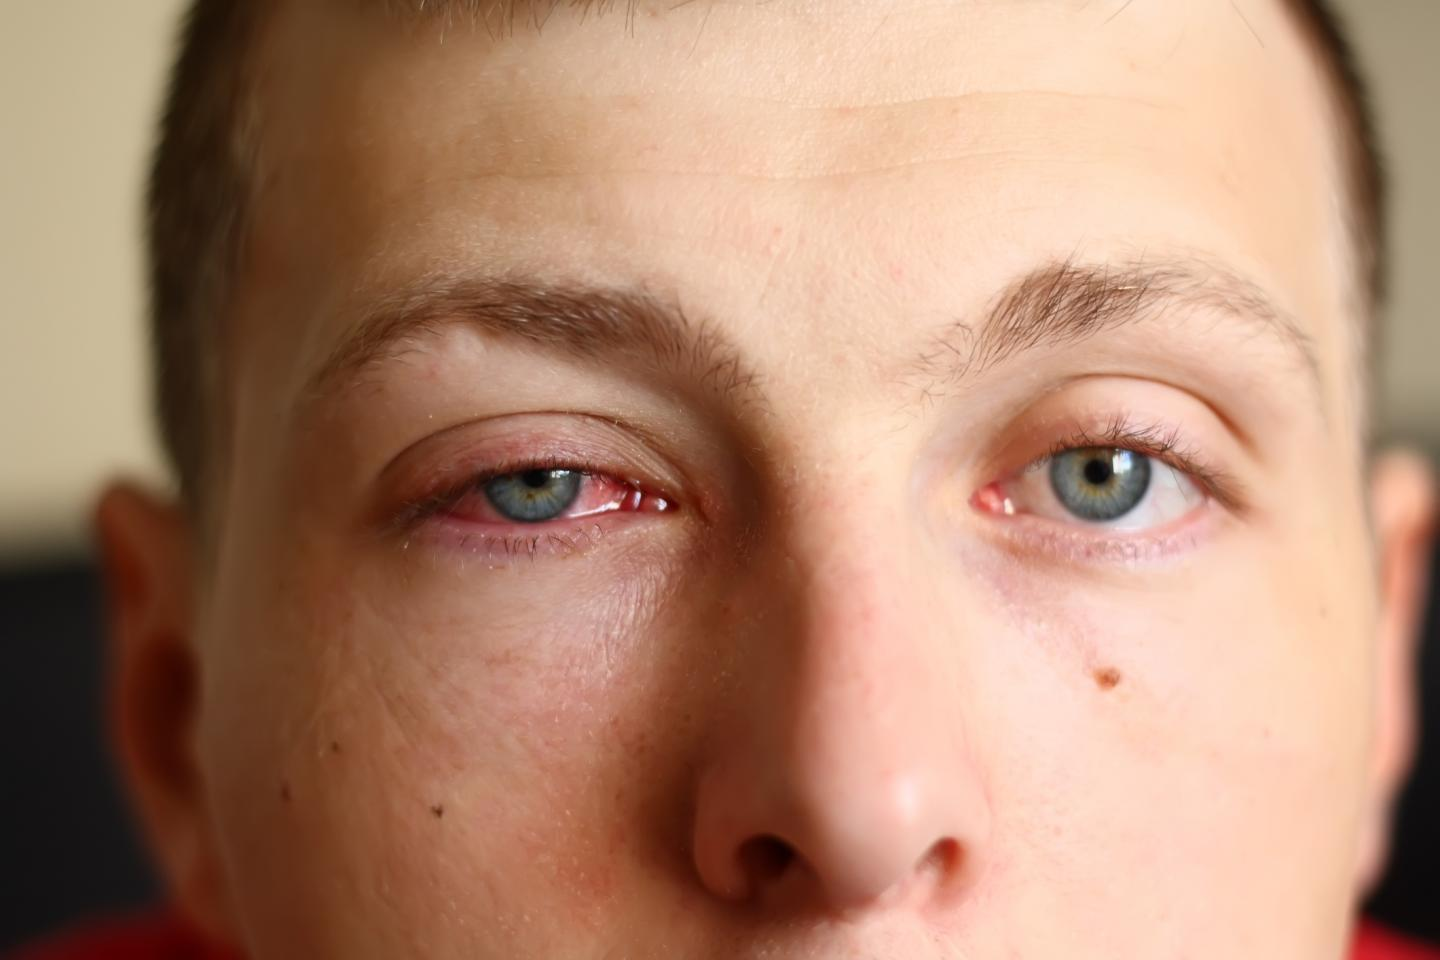 An example of viral conjunctivitis